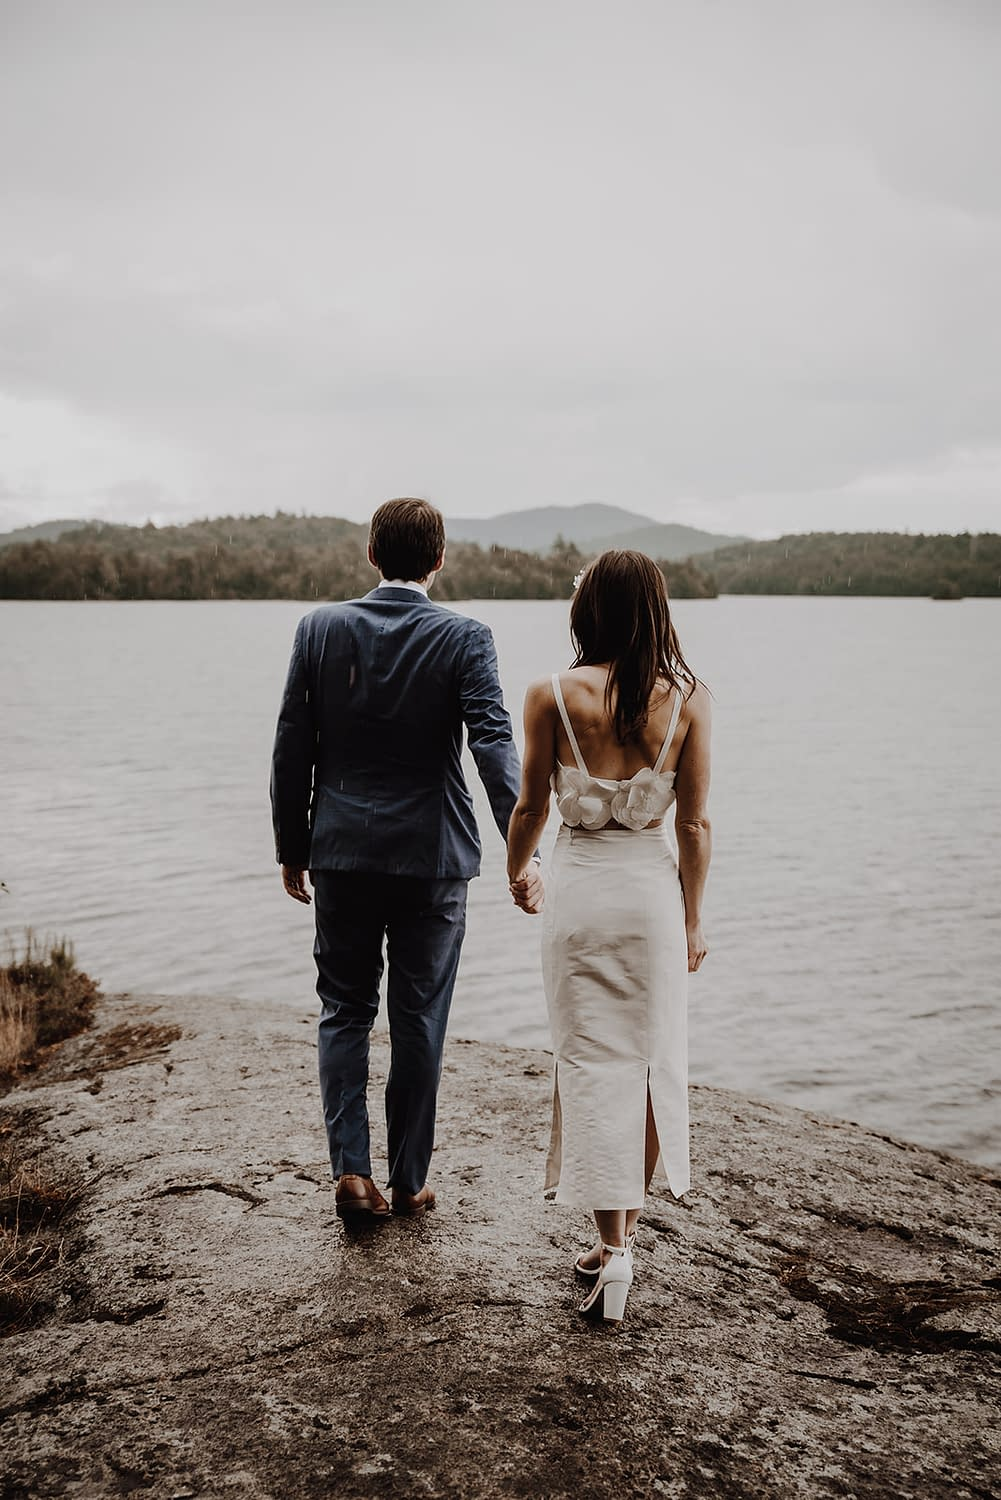 Elopement photography as part of all-inclusive Adirondack elopement package